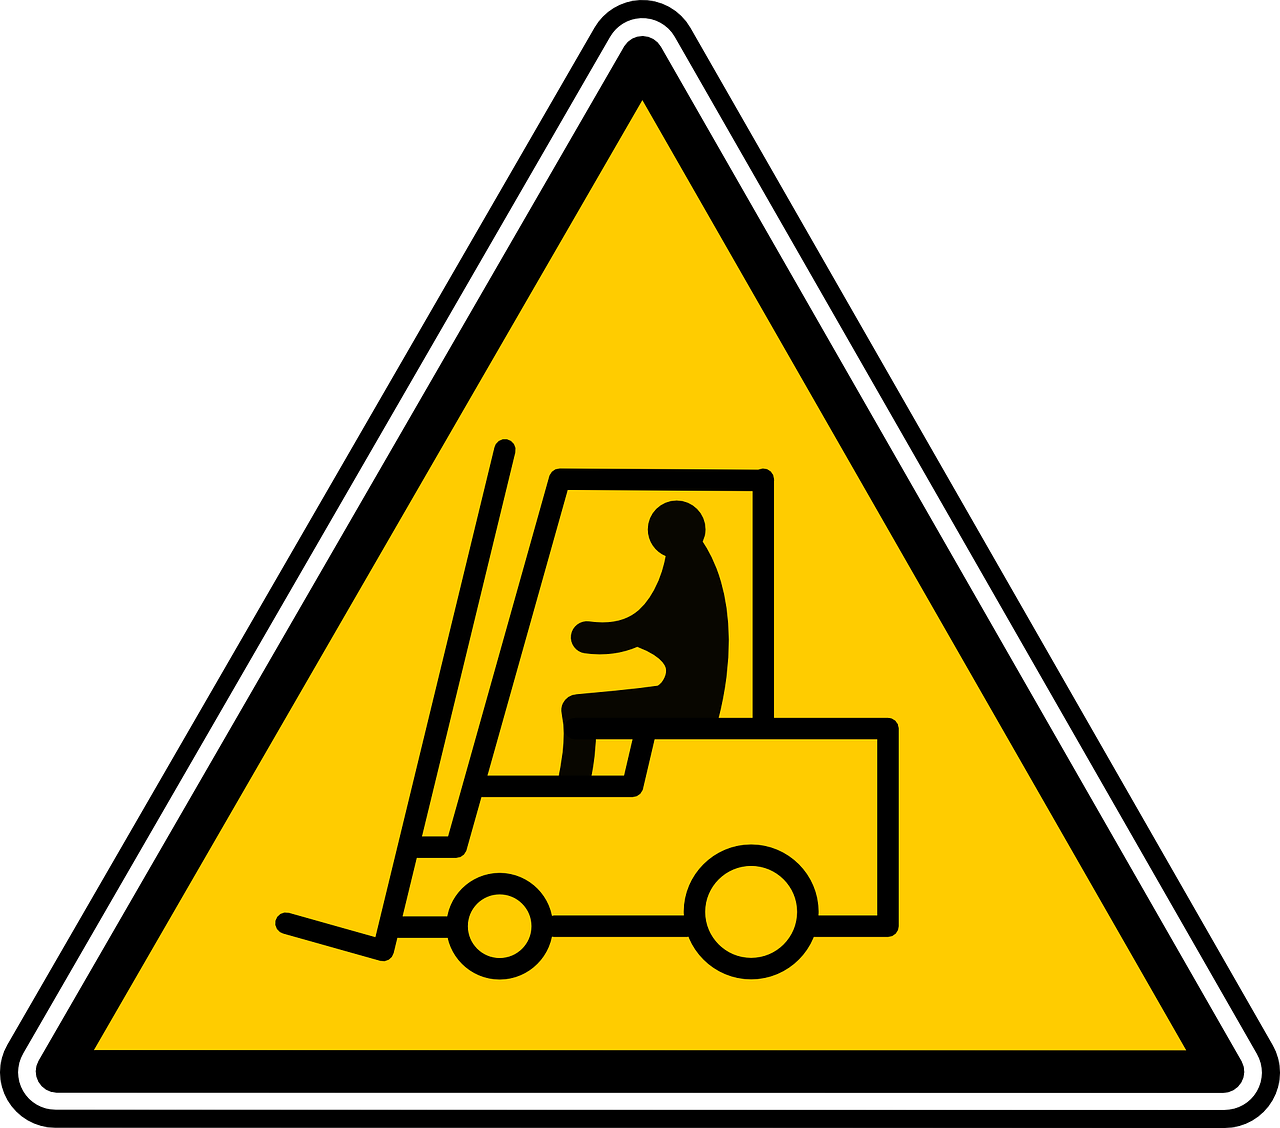 Forklift Safety Products to Reduce Accidents | CertifyMe.net